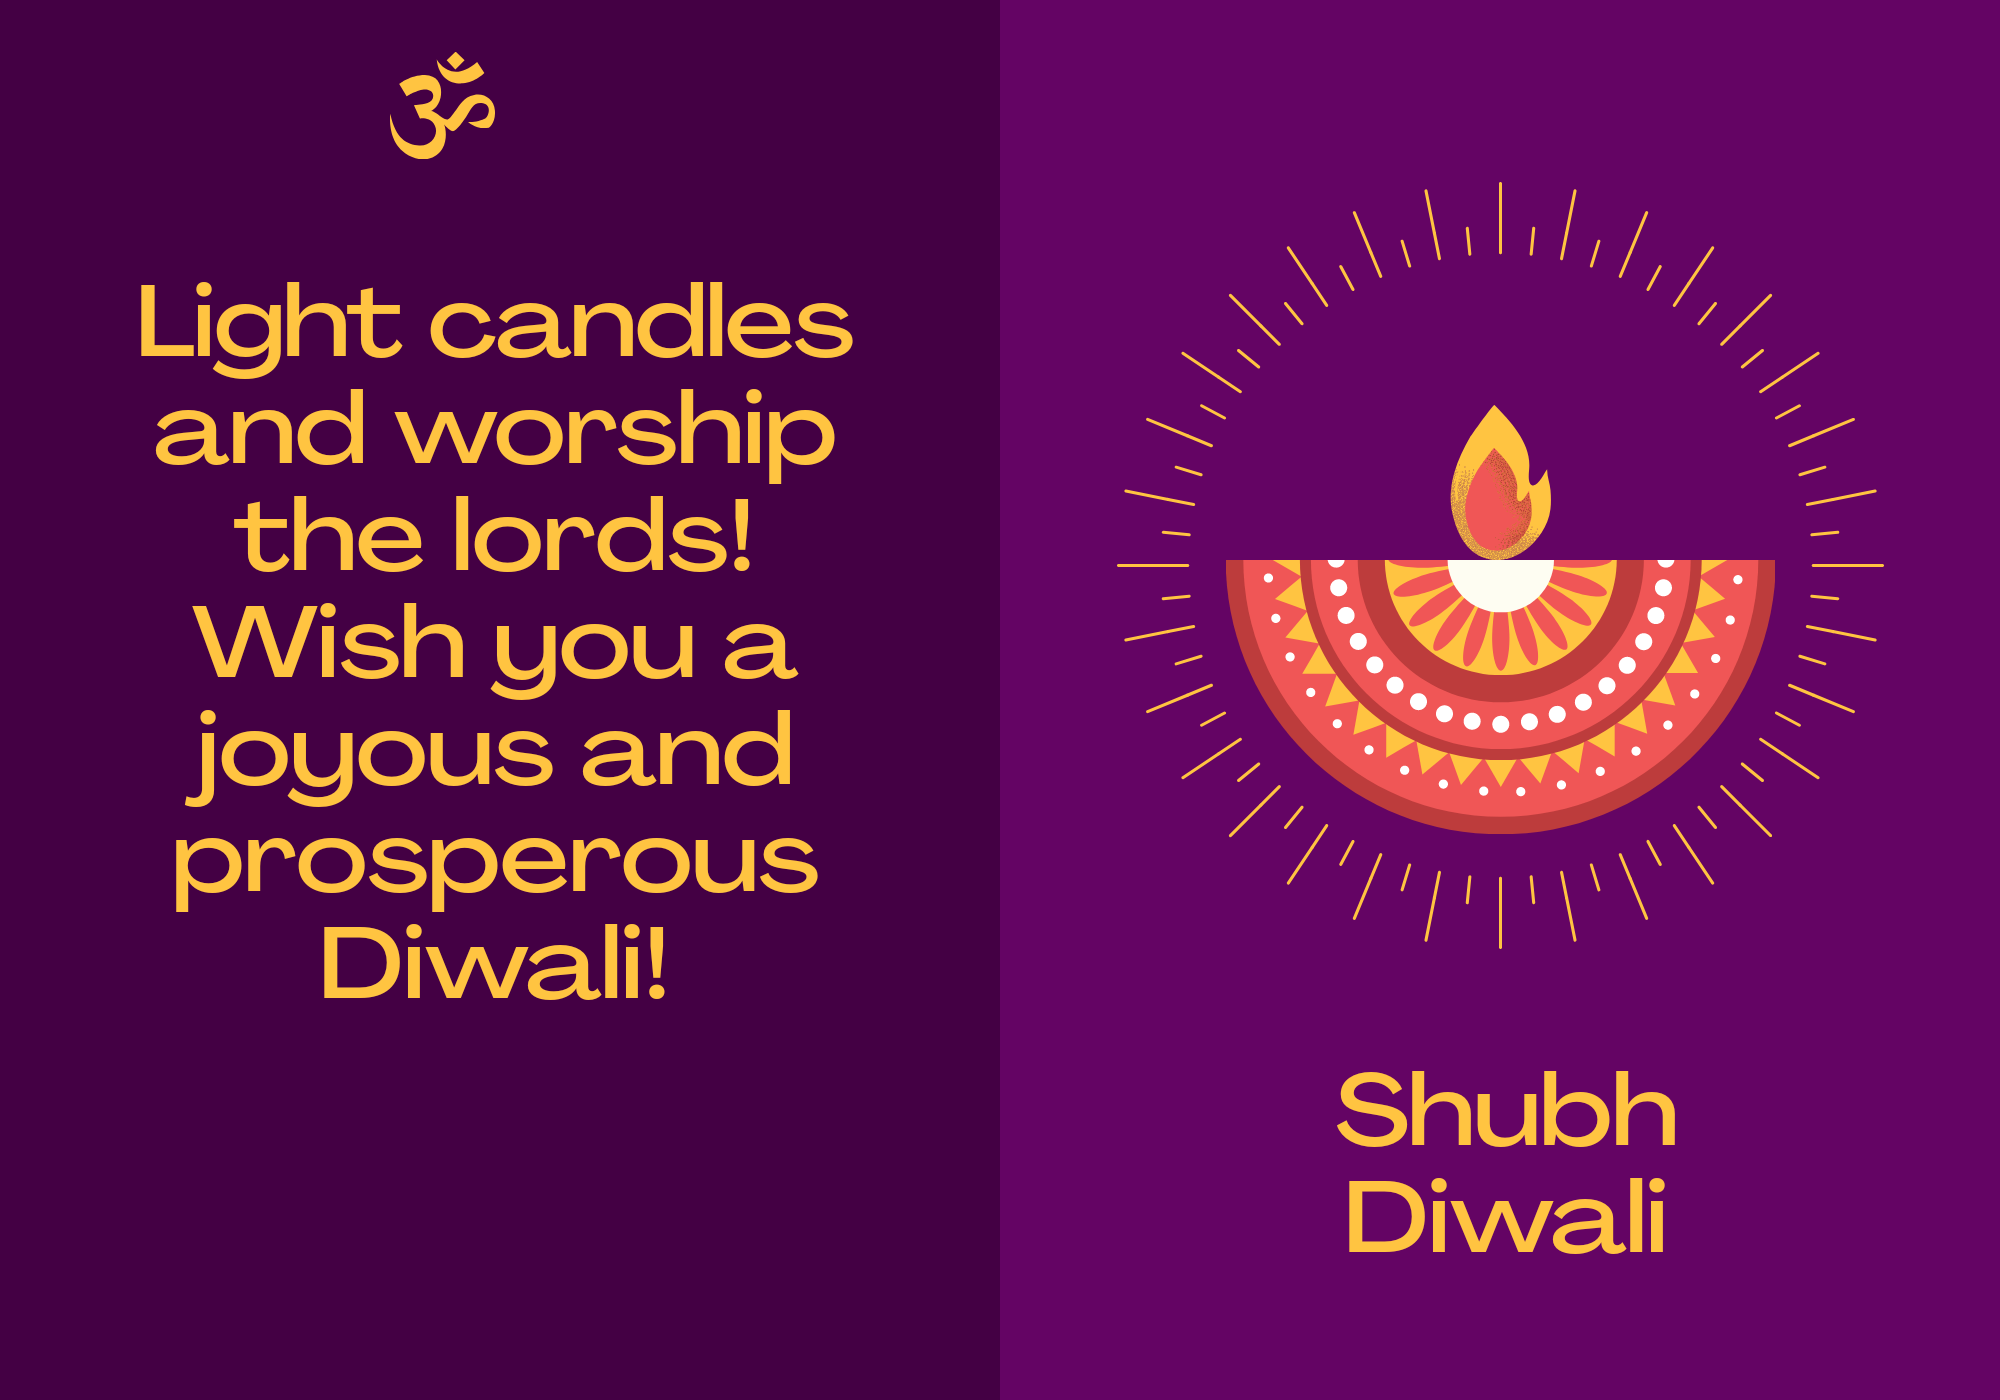 Shubh Diwali 2020 Cards and Pictures